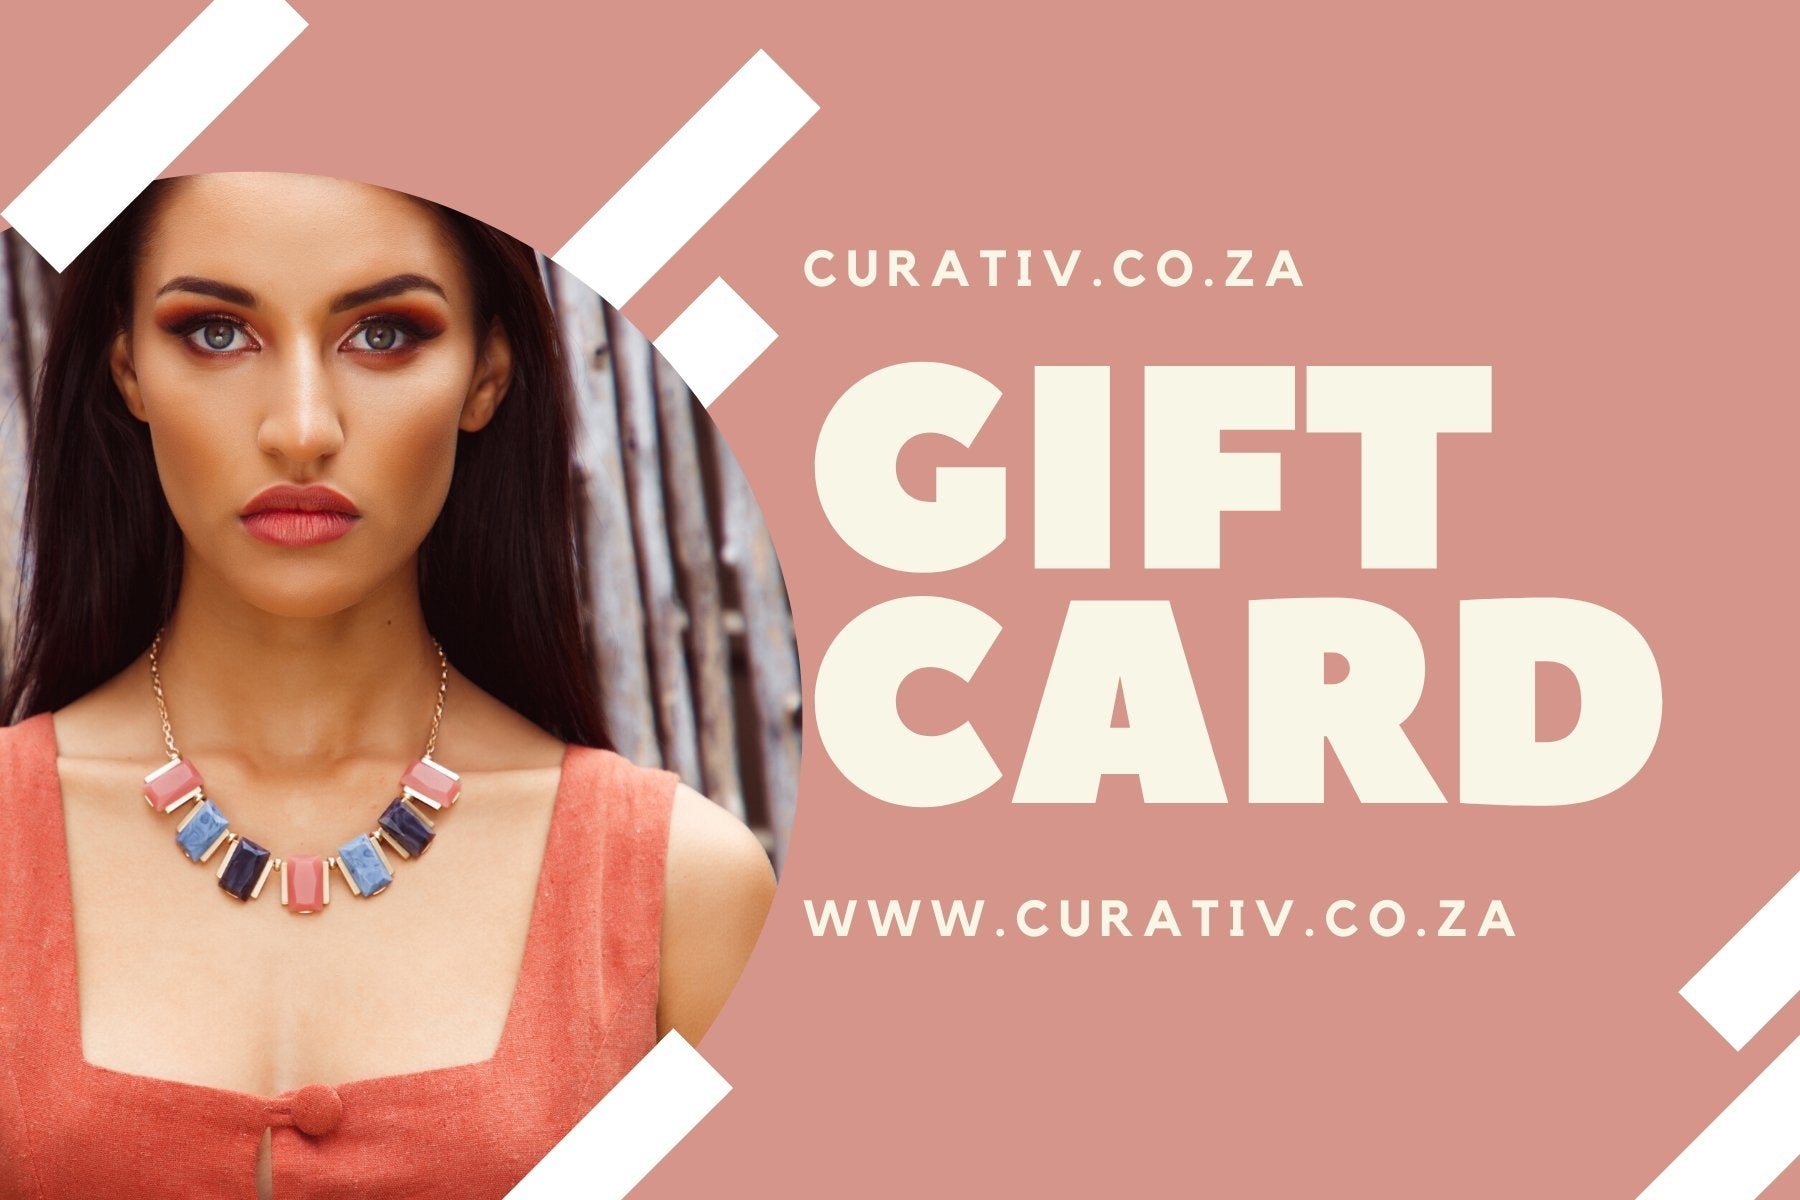 curAtiv proudly gives you Gift Card Gift Card